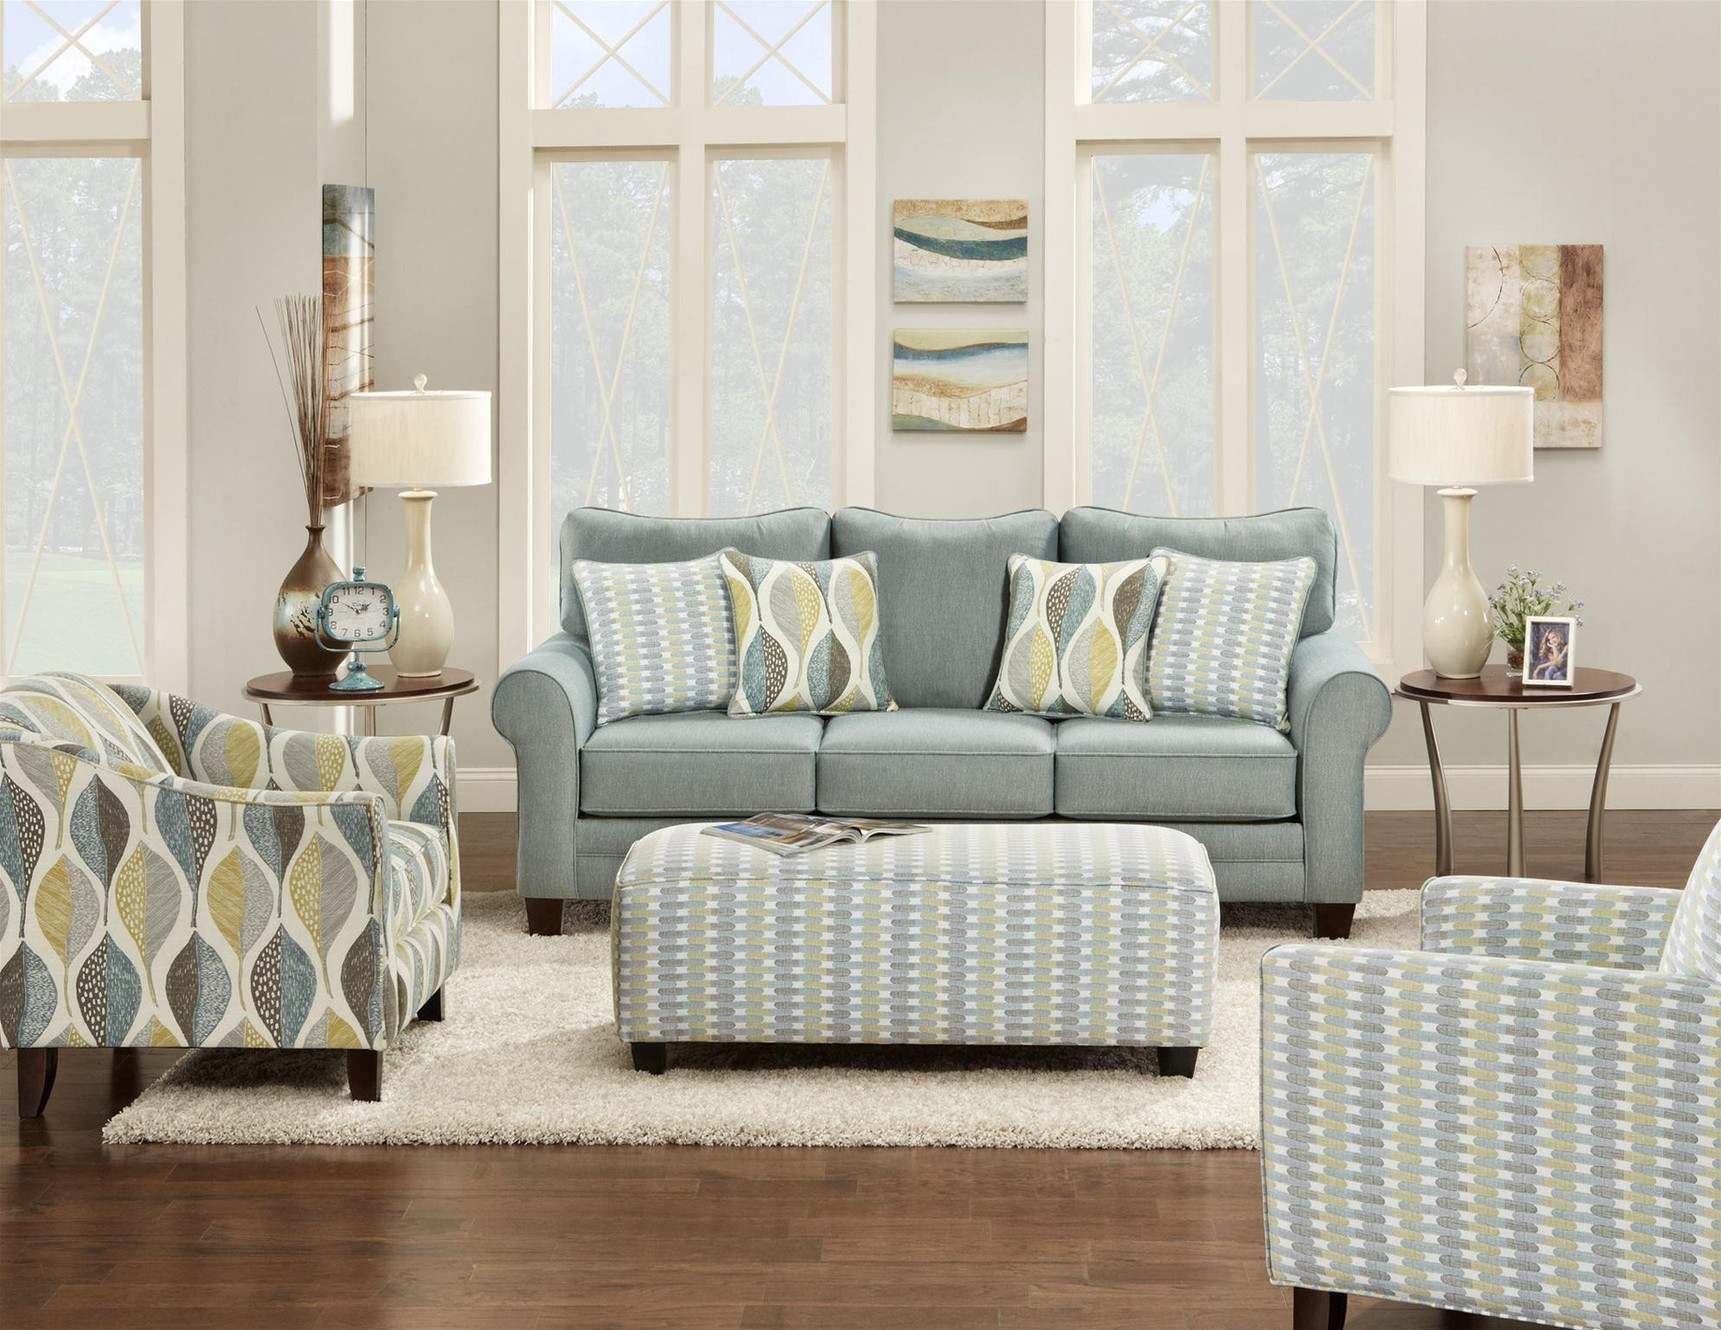 Al Fischer Interiors Reupholstery Window Treatments